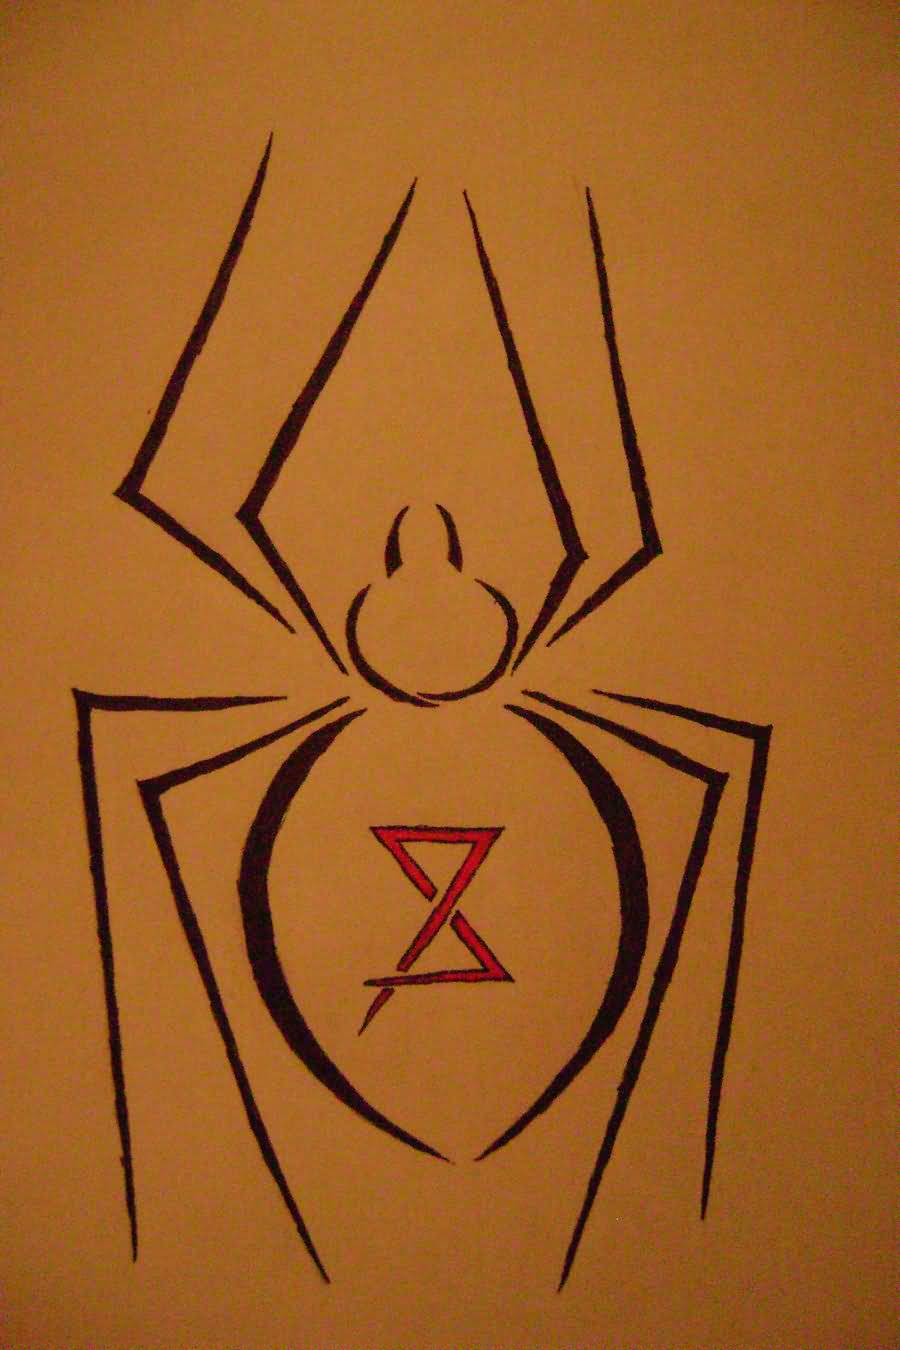 Simple Black Widow Tattoo Design Stencil